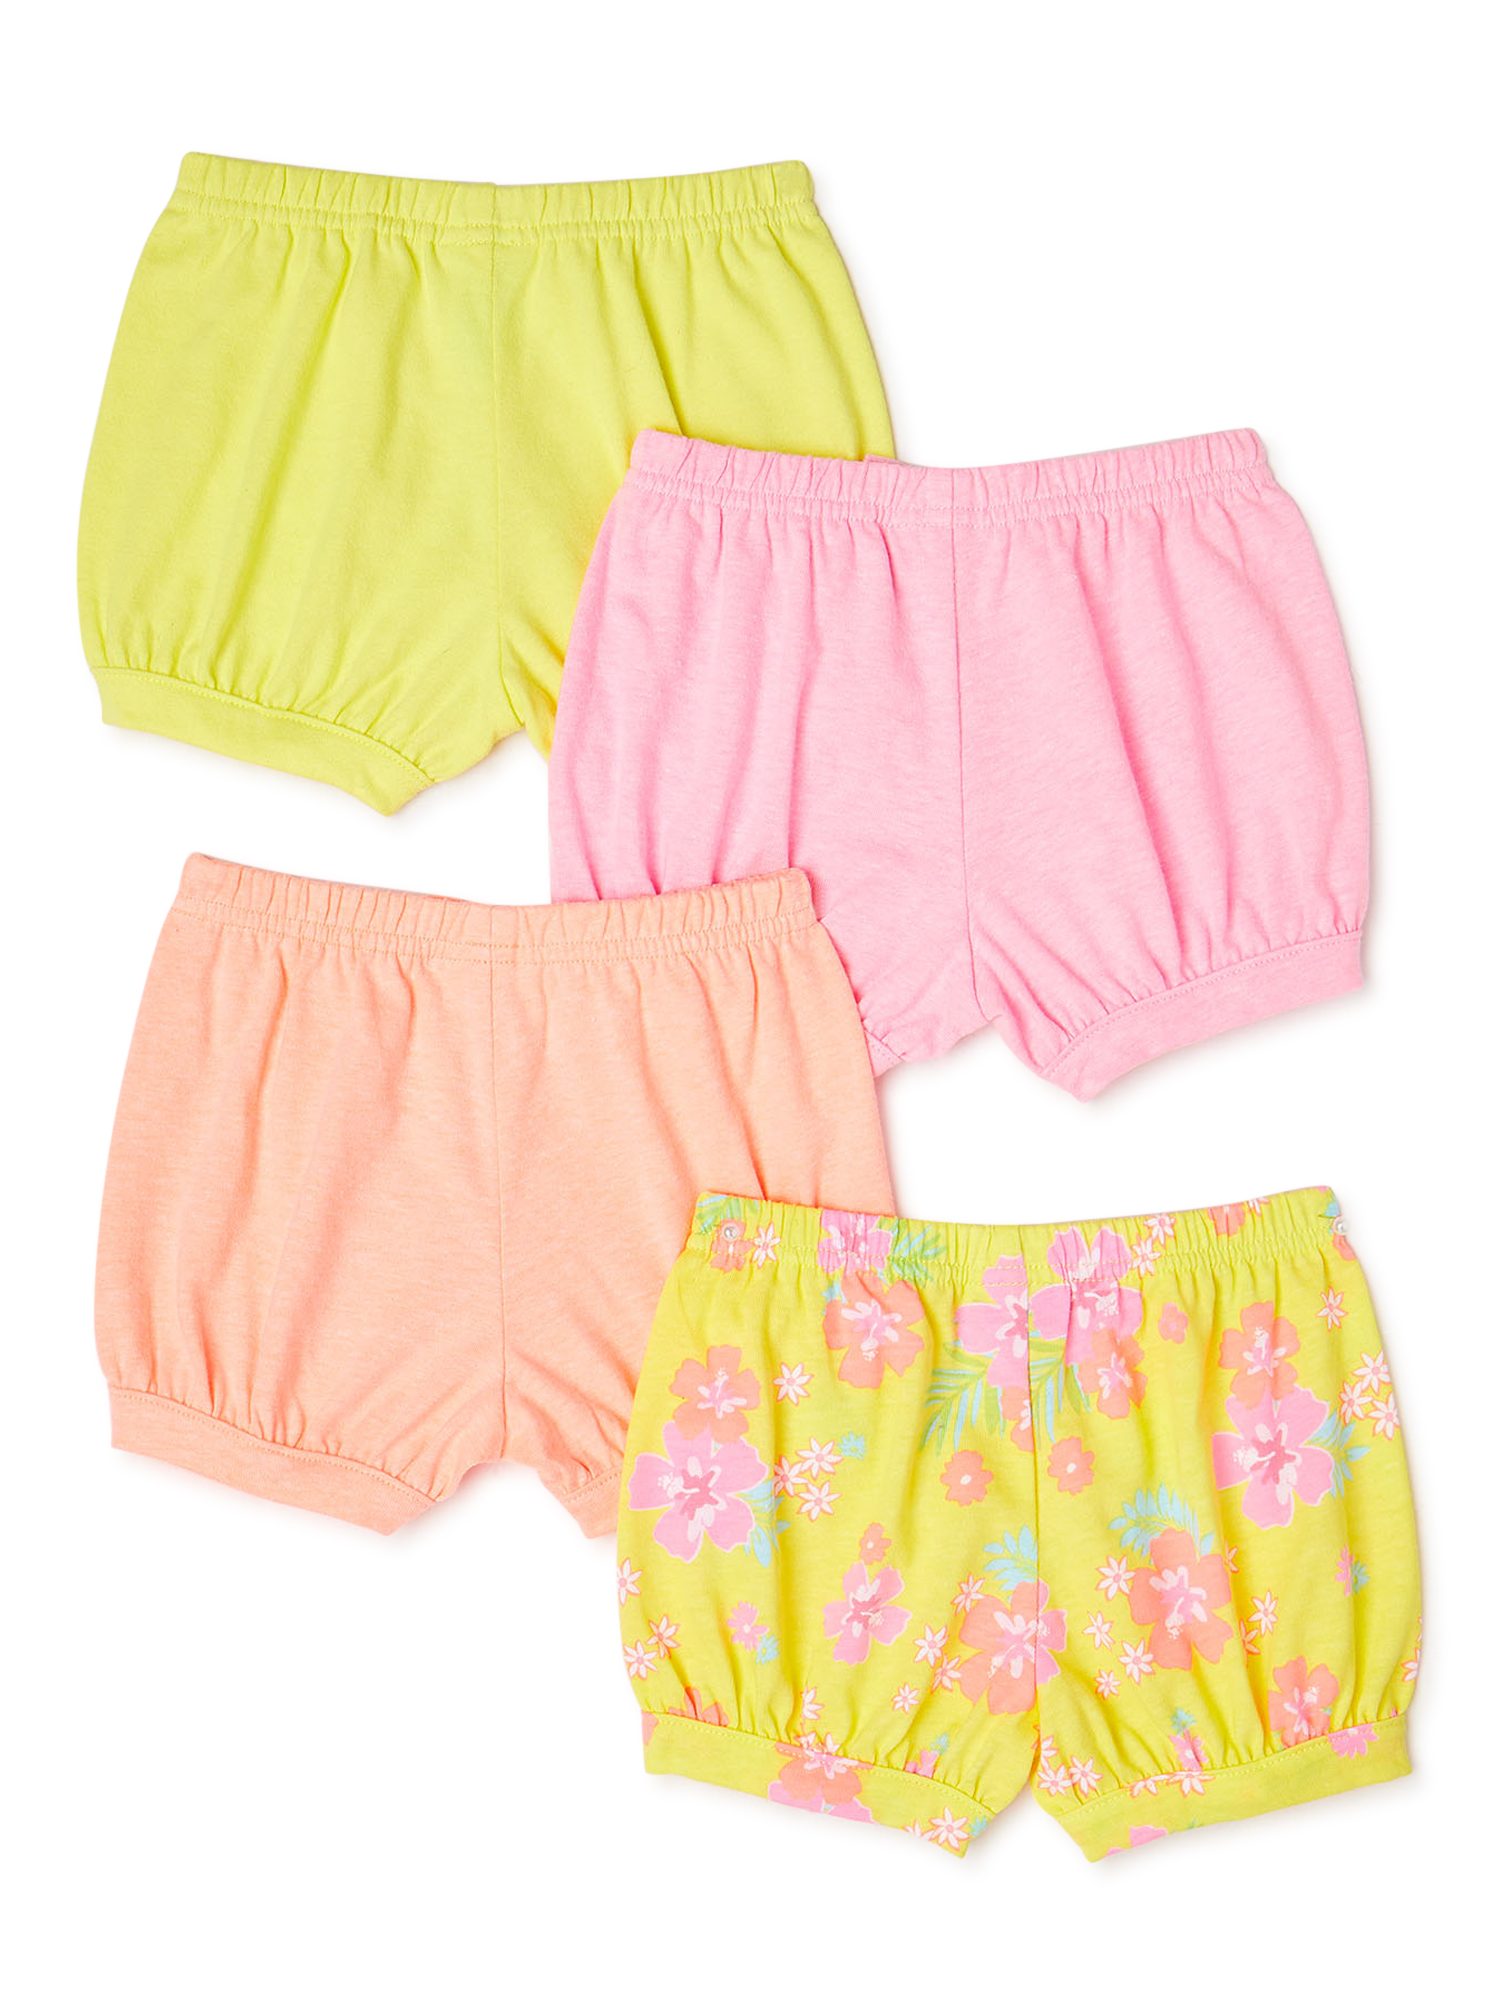 Bright Coral Easter Bunny High waist bloomers with bow belt girls baby